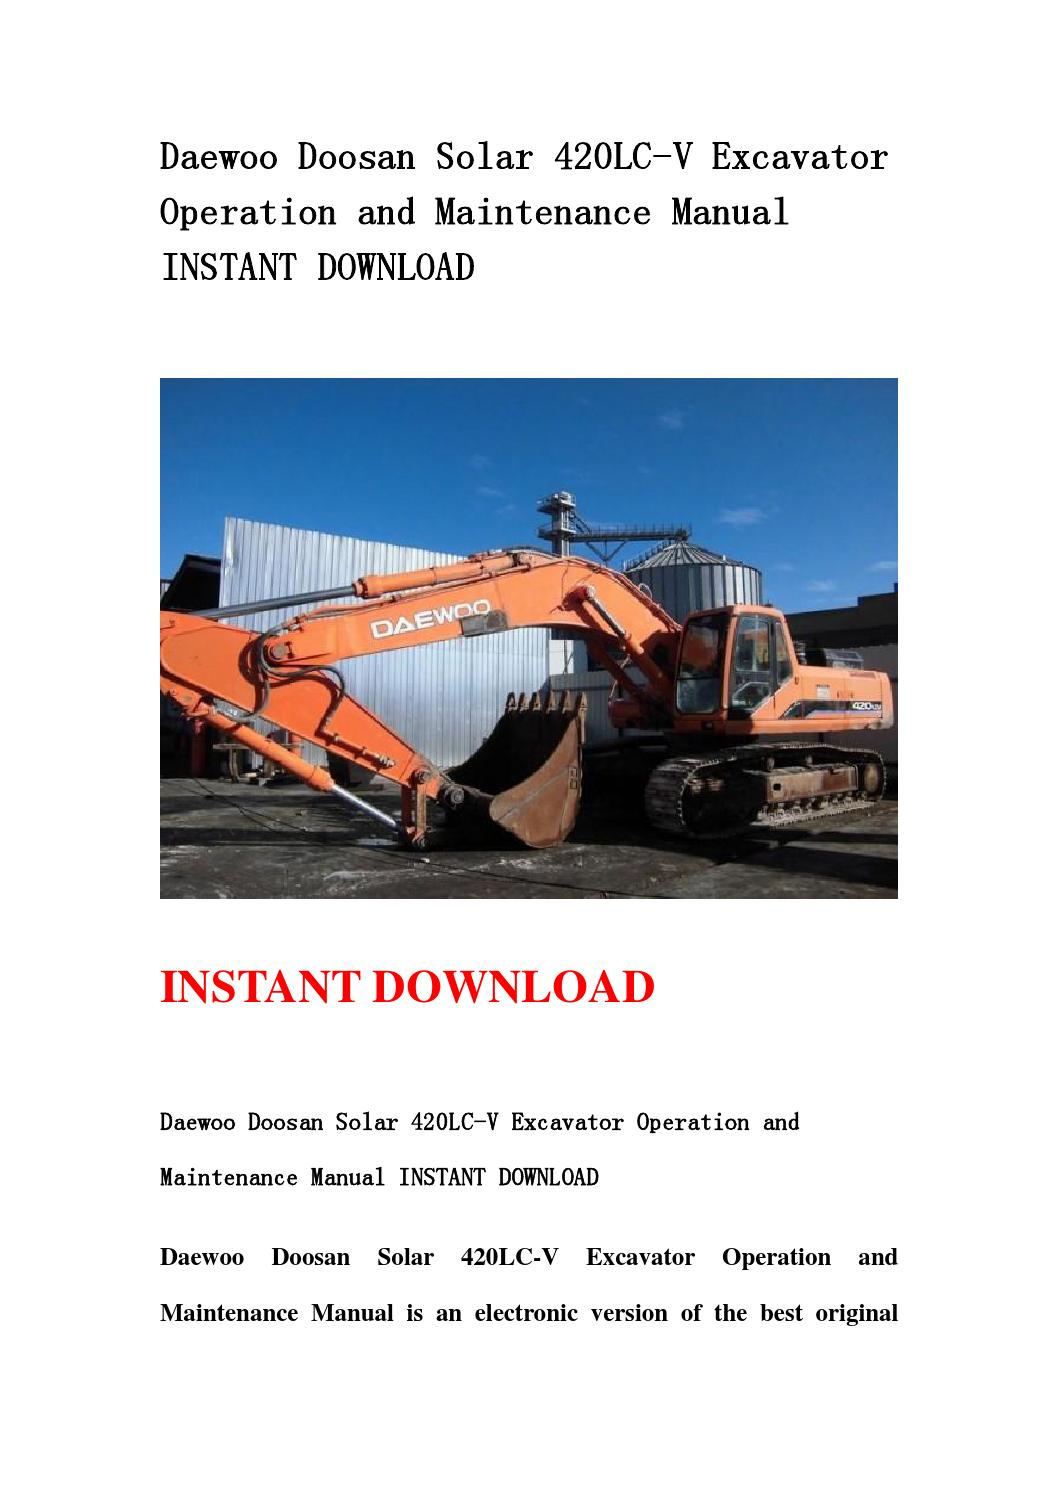 Daewoo doosan solar 420lc v excavator operation and maintenance manual  instant download by nfjsennnnd - issuu